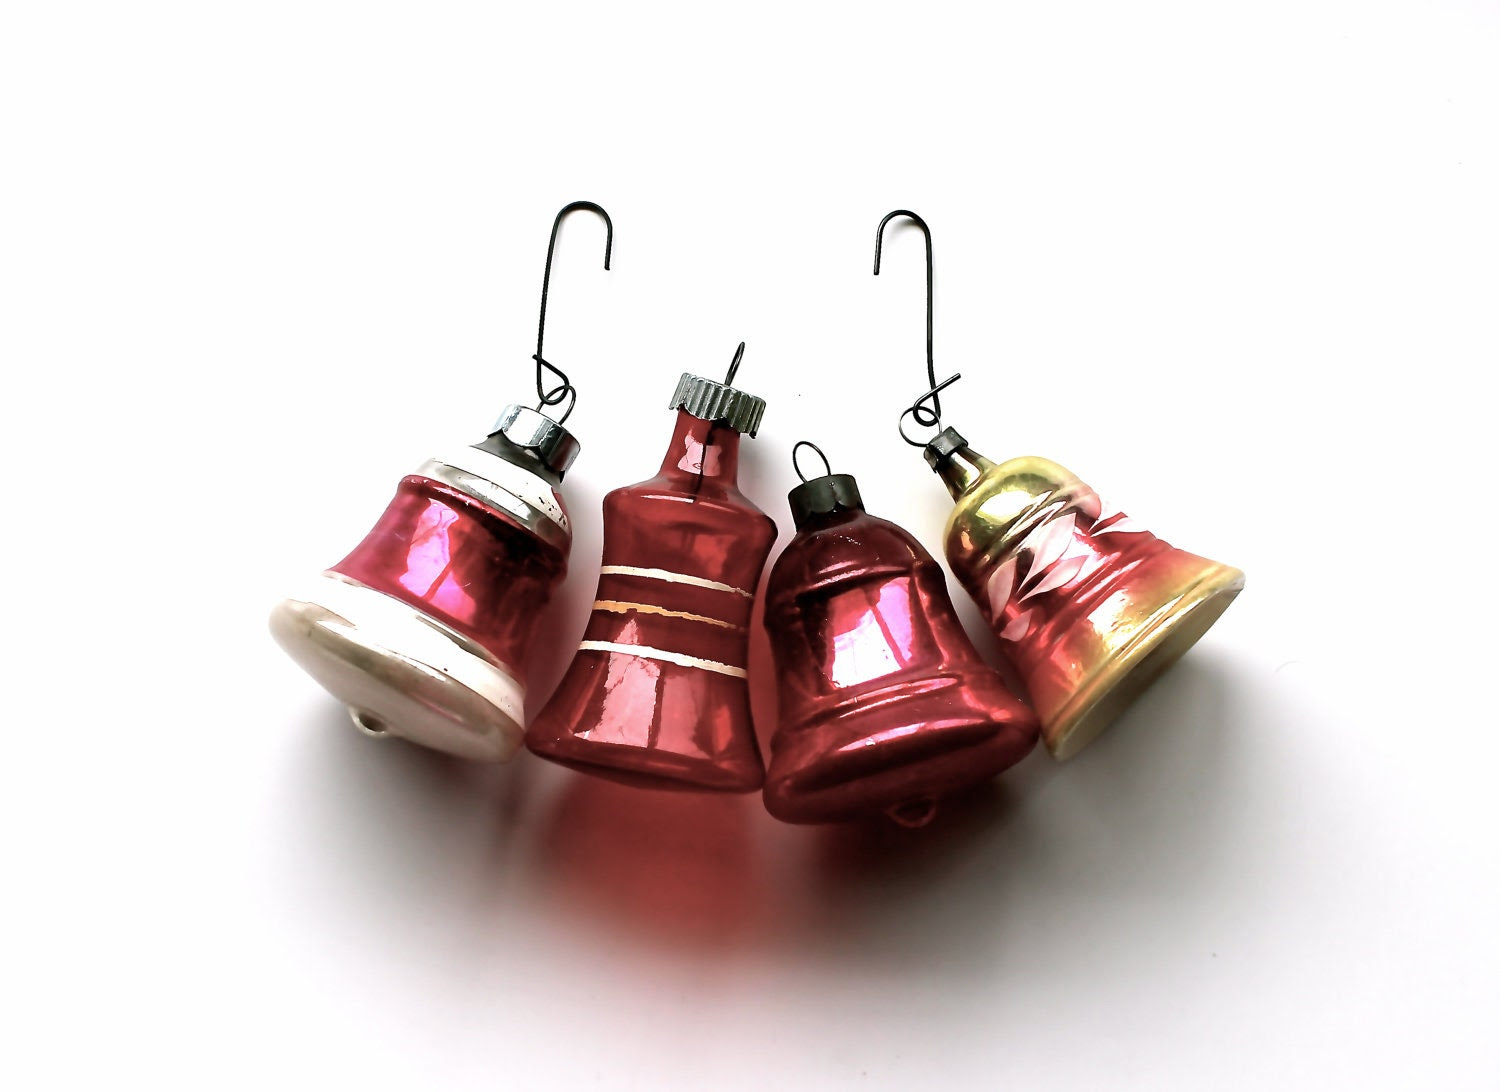 Carol of the Bells - Antique Mercury Glass Ornaments - Christmas - Holidays - Red - Pink - Silver - Shiny Brite - becaruns